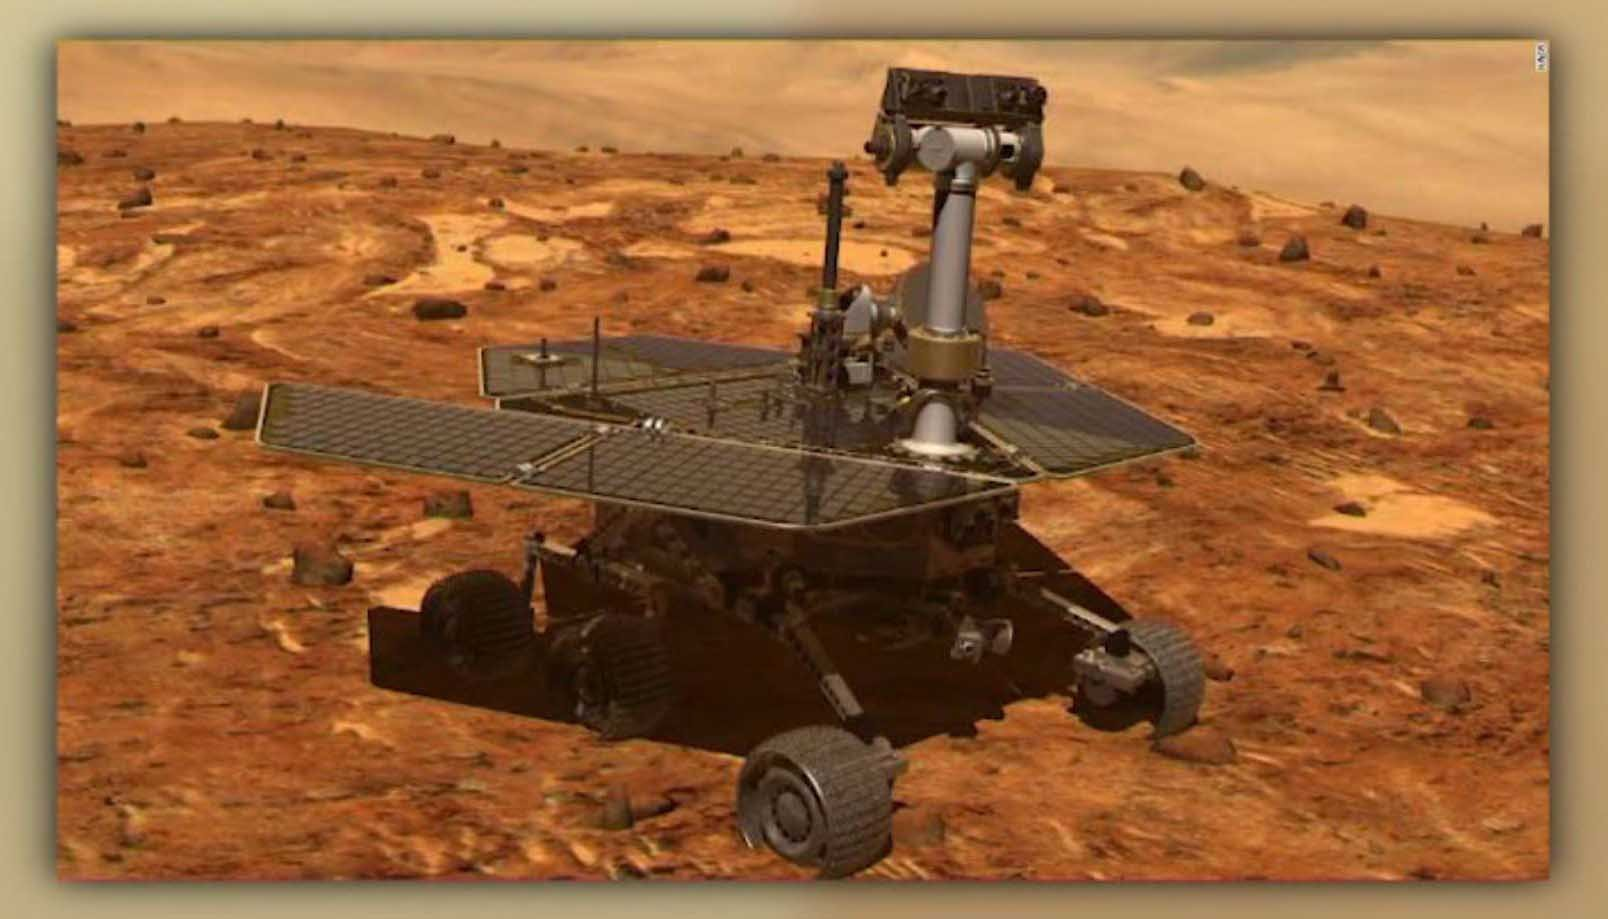 NASA's Opportunity rover is facing some setbacks due to a huge dust storm. (Source: CNN/NASA/NASA/JPL-Caltech/TAMU)